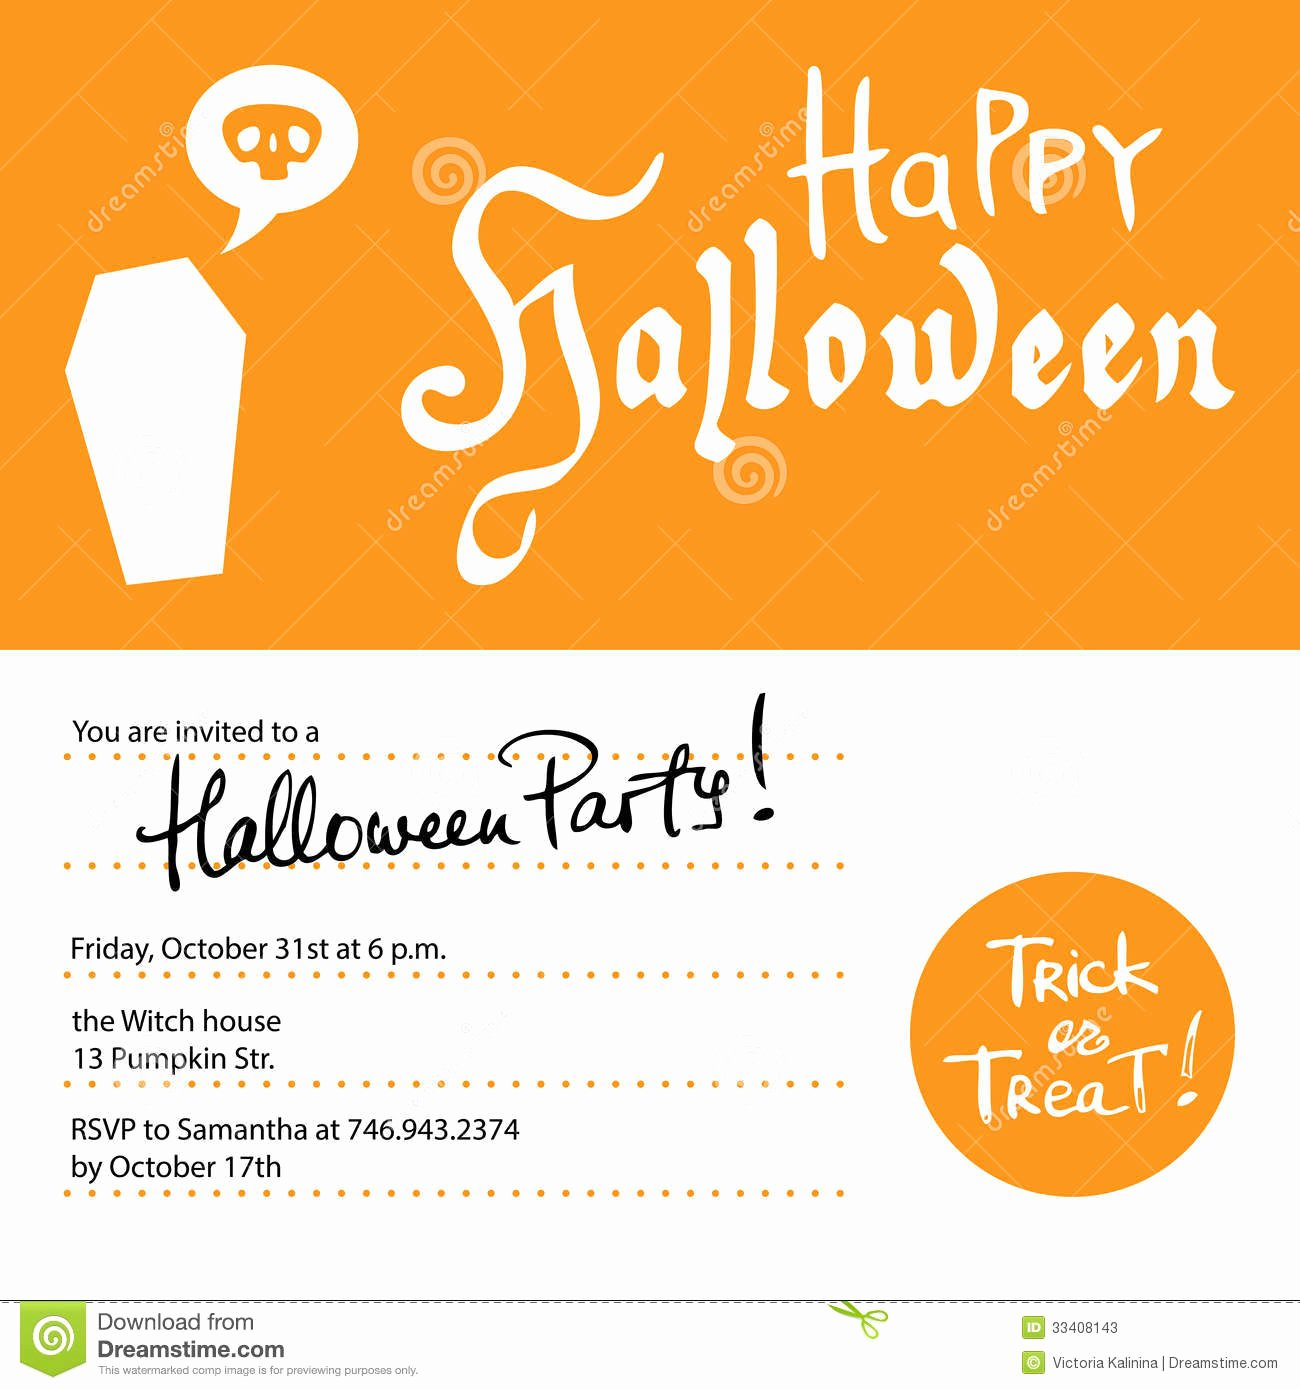 Halloween Party Invitations Template Inspirational Halloween Party Invitation Design Template Stock Vector